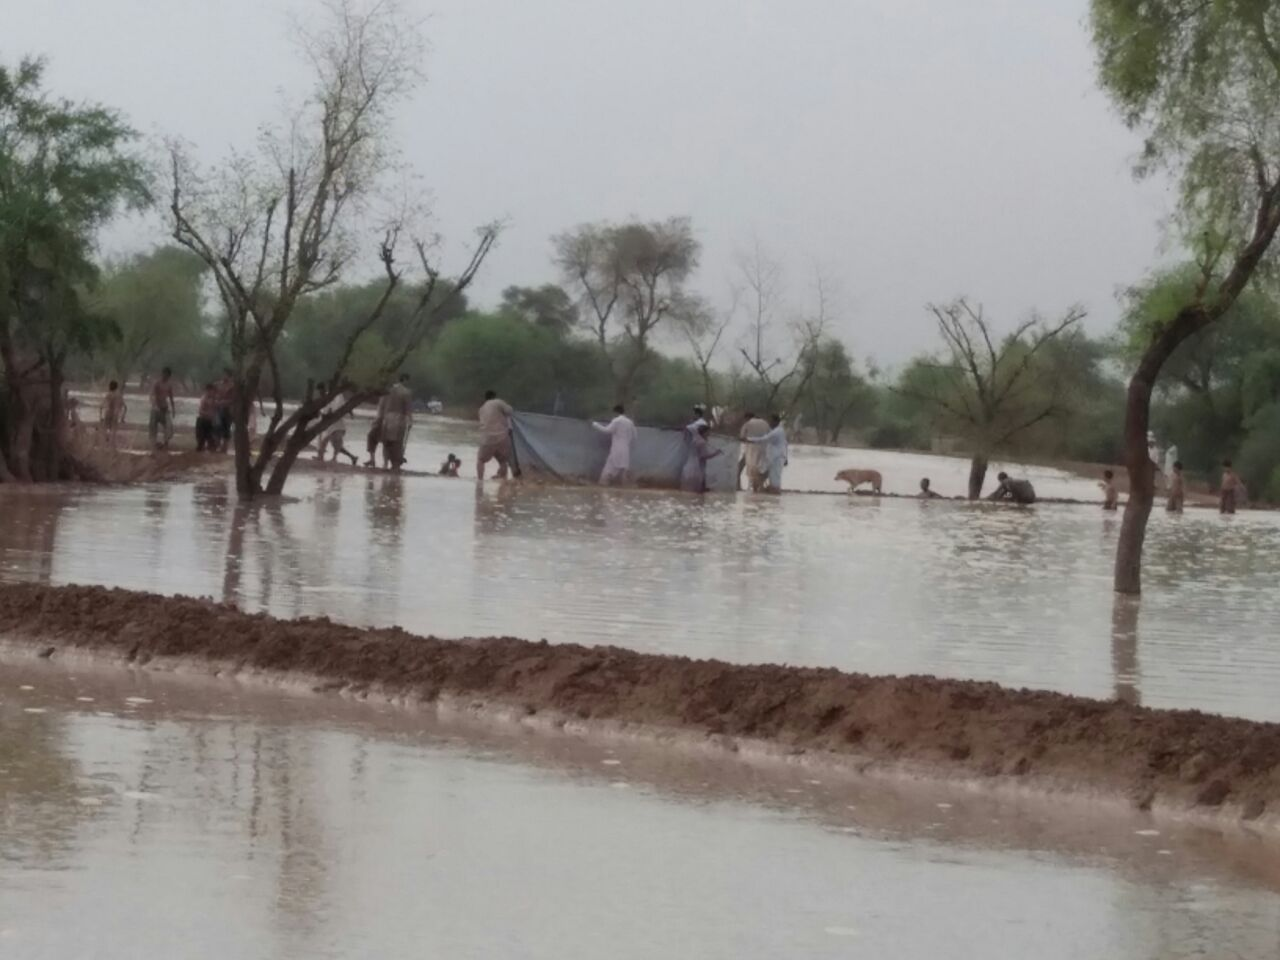 Breeach FIlling water stoppage with Cloth sheet and erecting new embankment behind it. Spate Irrigation Kot Kaisarani